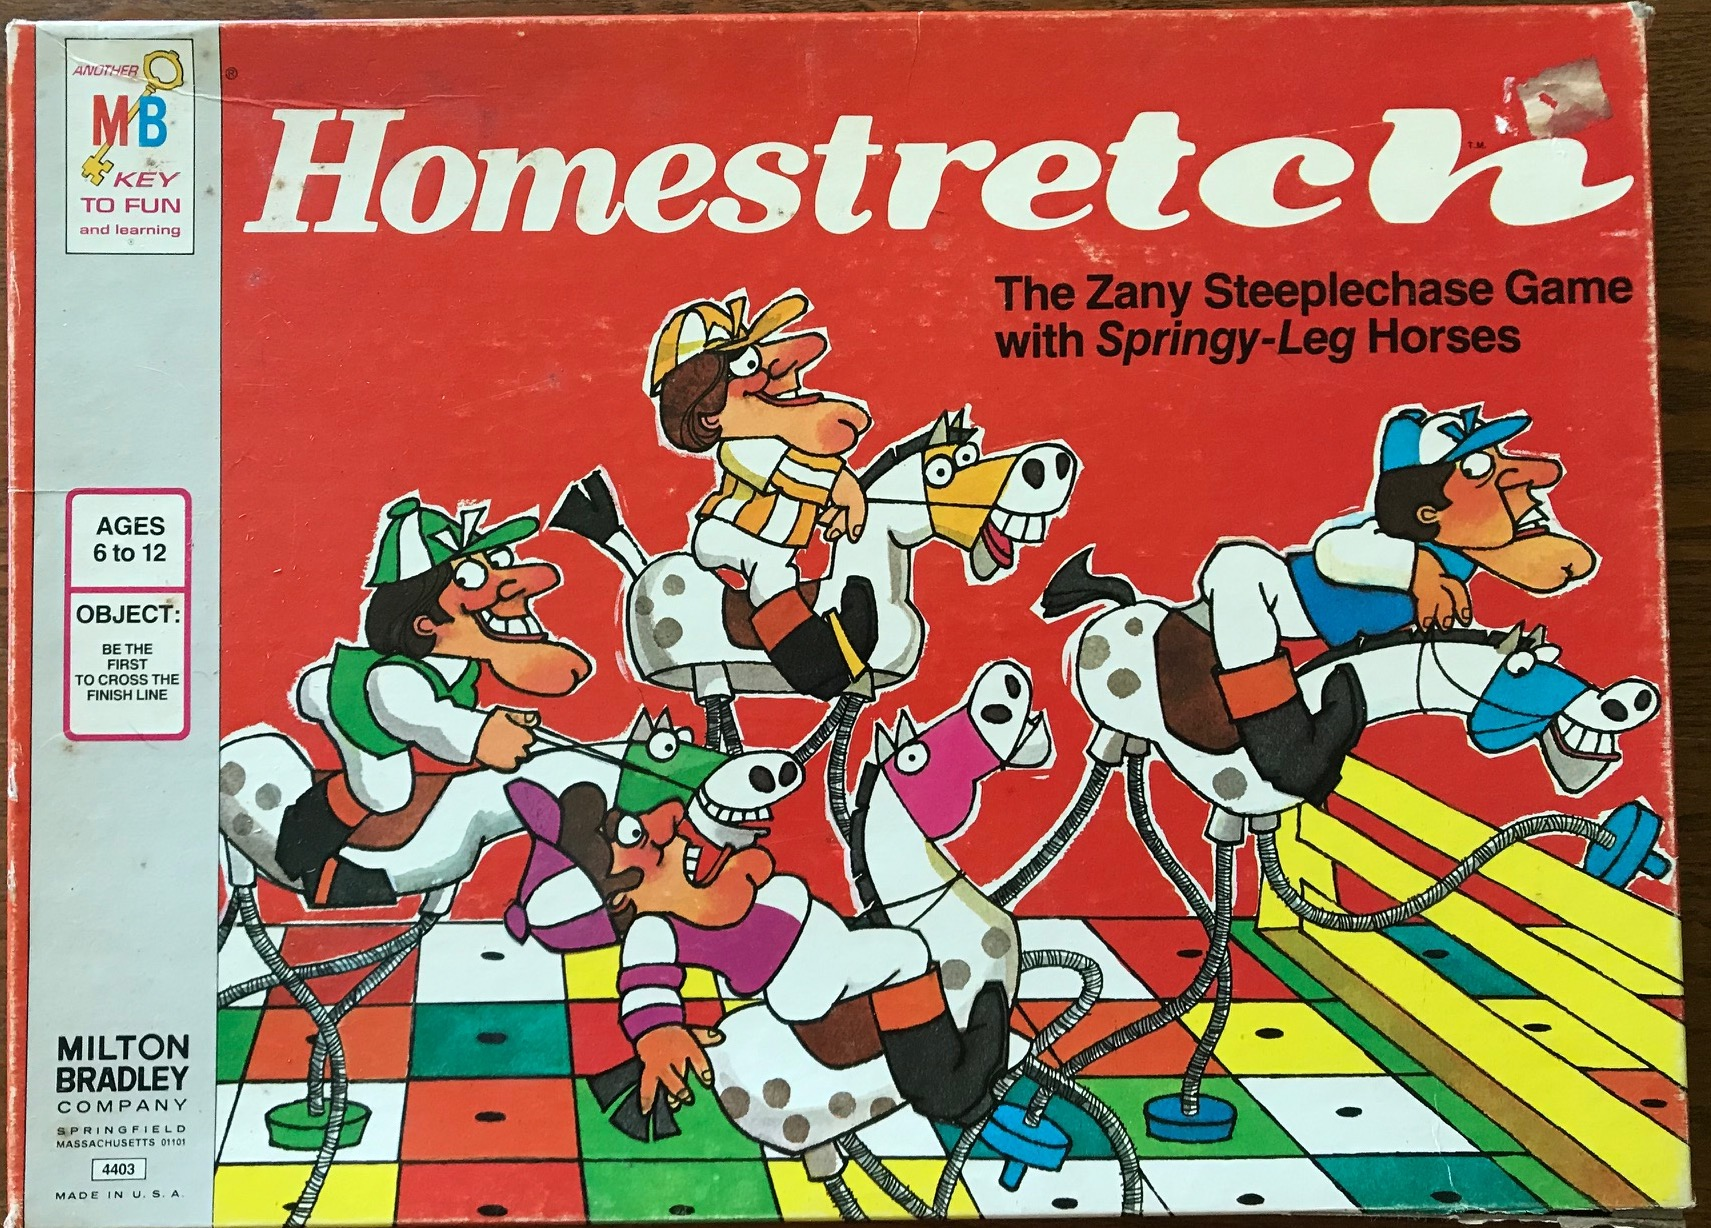 This cover shows ridiculous cartoon racehorses and jockeys tipped every which way as though the legs are made of springs